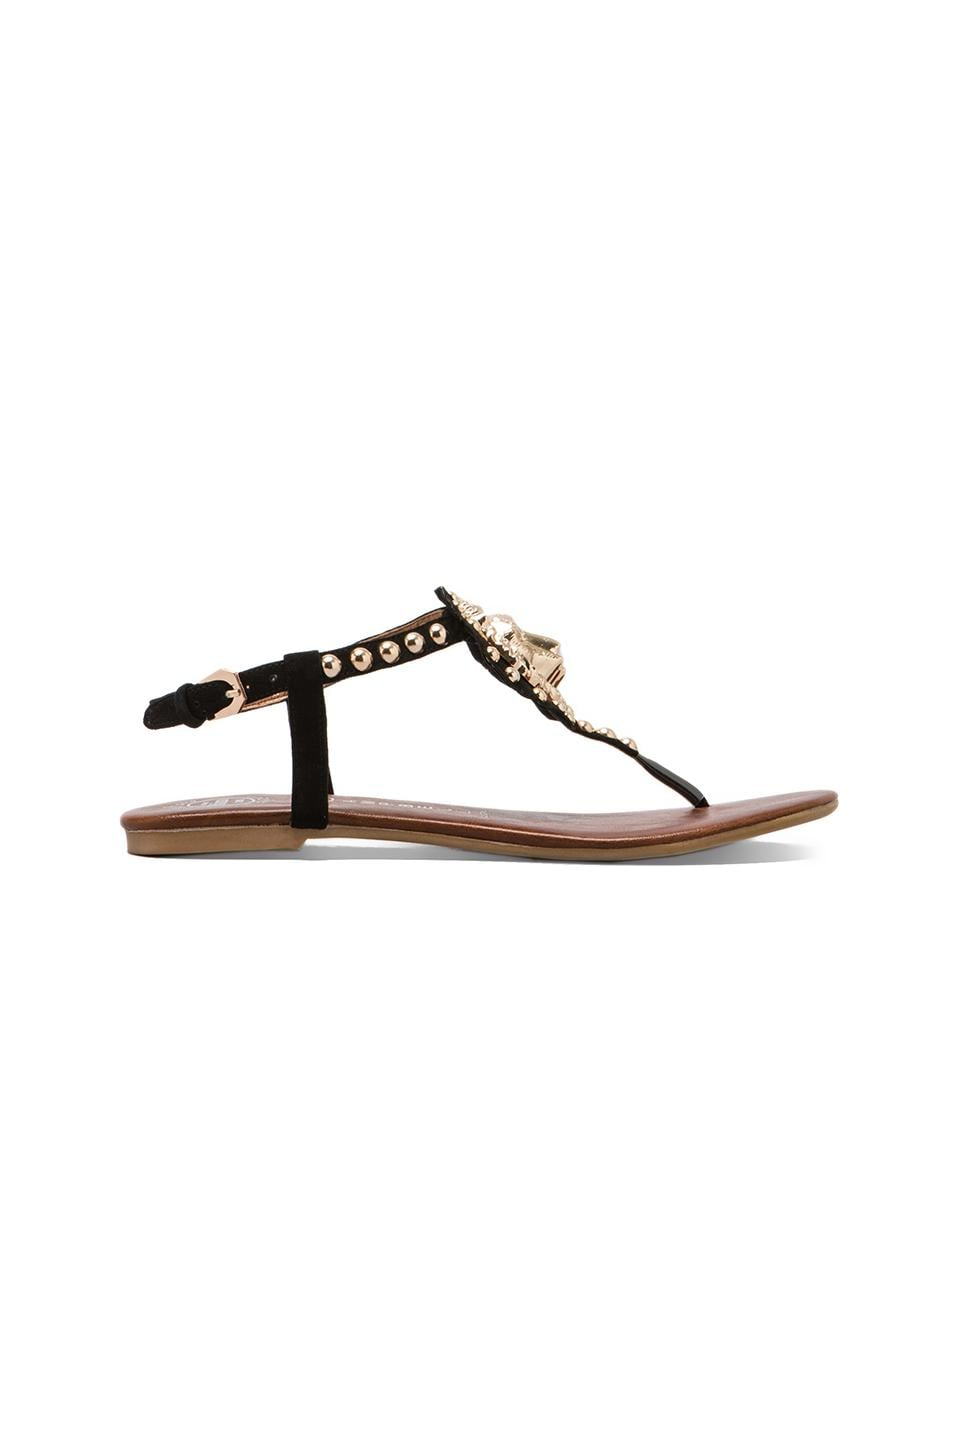 Jeffrey Campbell Mystic Leo Suede Sandal in Black/Gold